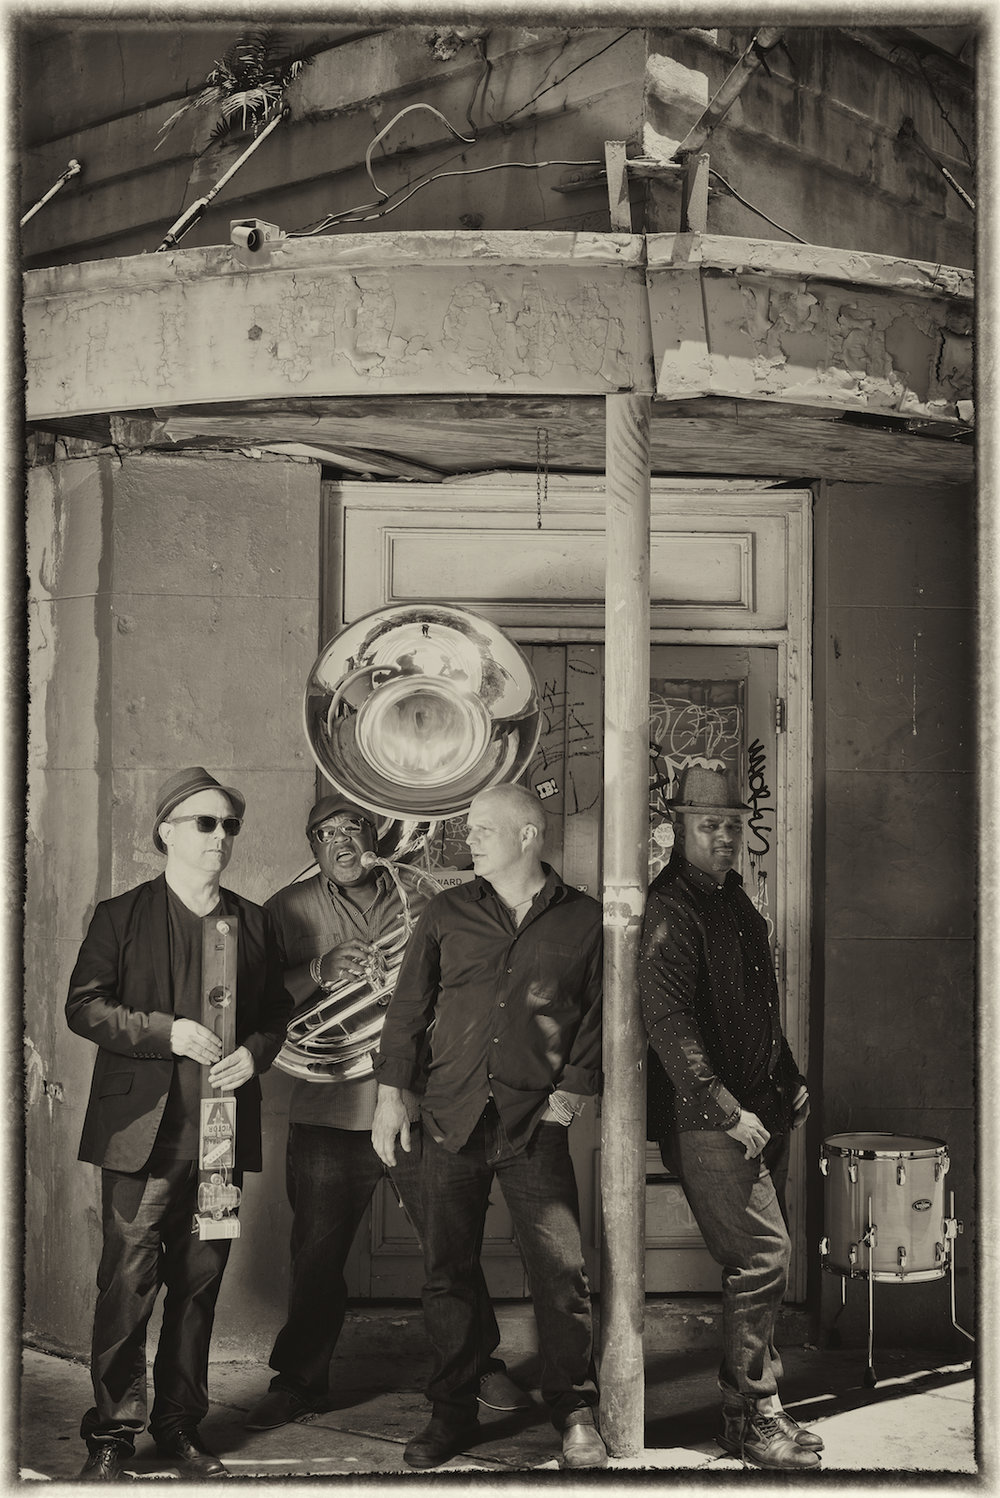 Mad Skillet, with John Medeski, Will Smith, Kirk Joseph and Terence Higgins, photographed by New Orleans based photographer, Marc Pagani